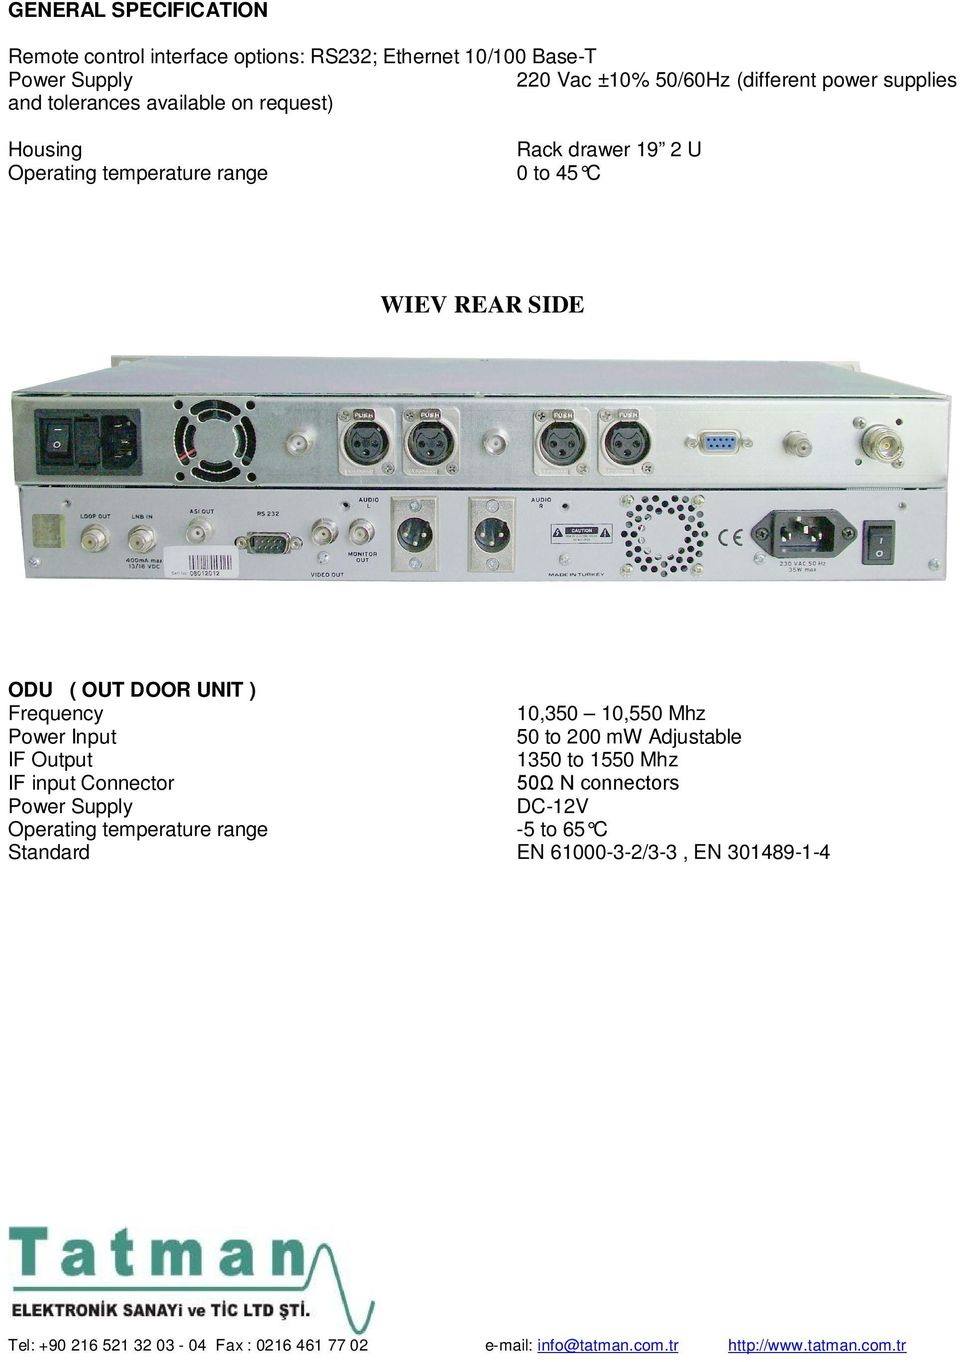 WIEV REAR SIDE ODU ( OUT DOOR UNIT ) Frequency 10,350 10,550 Mhz Power Input 50 to 200 mw Adjustable IF Output 1350 to 1550 Mhz